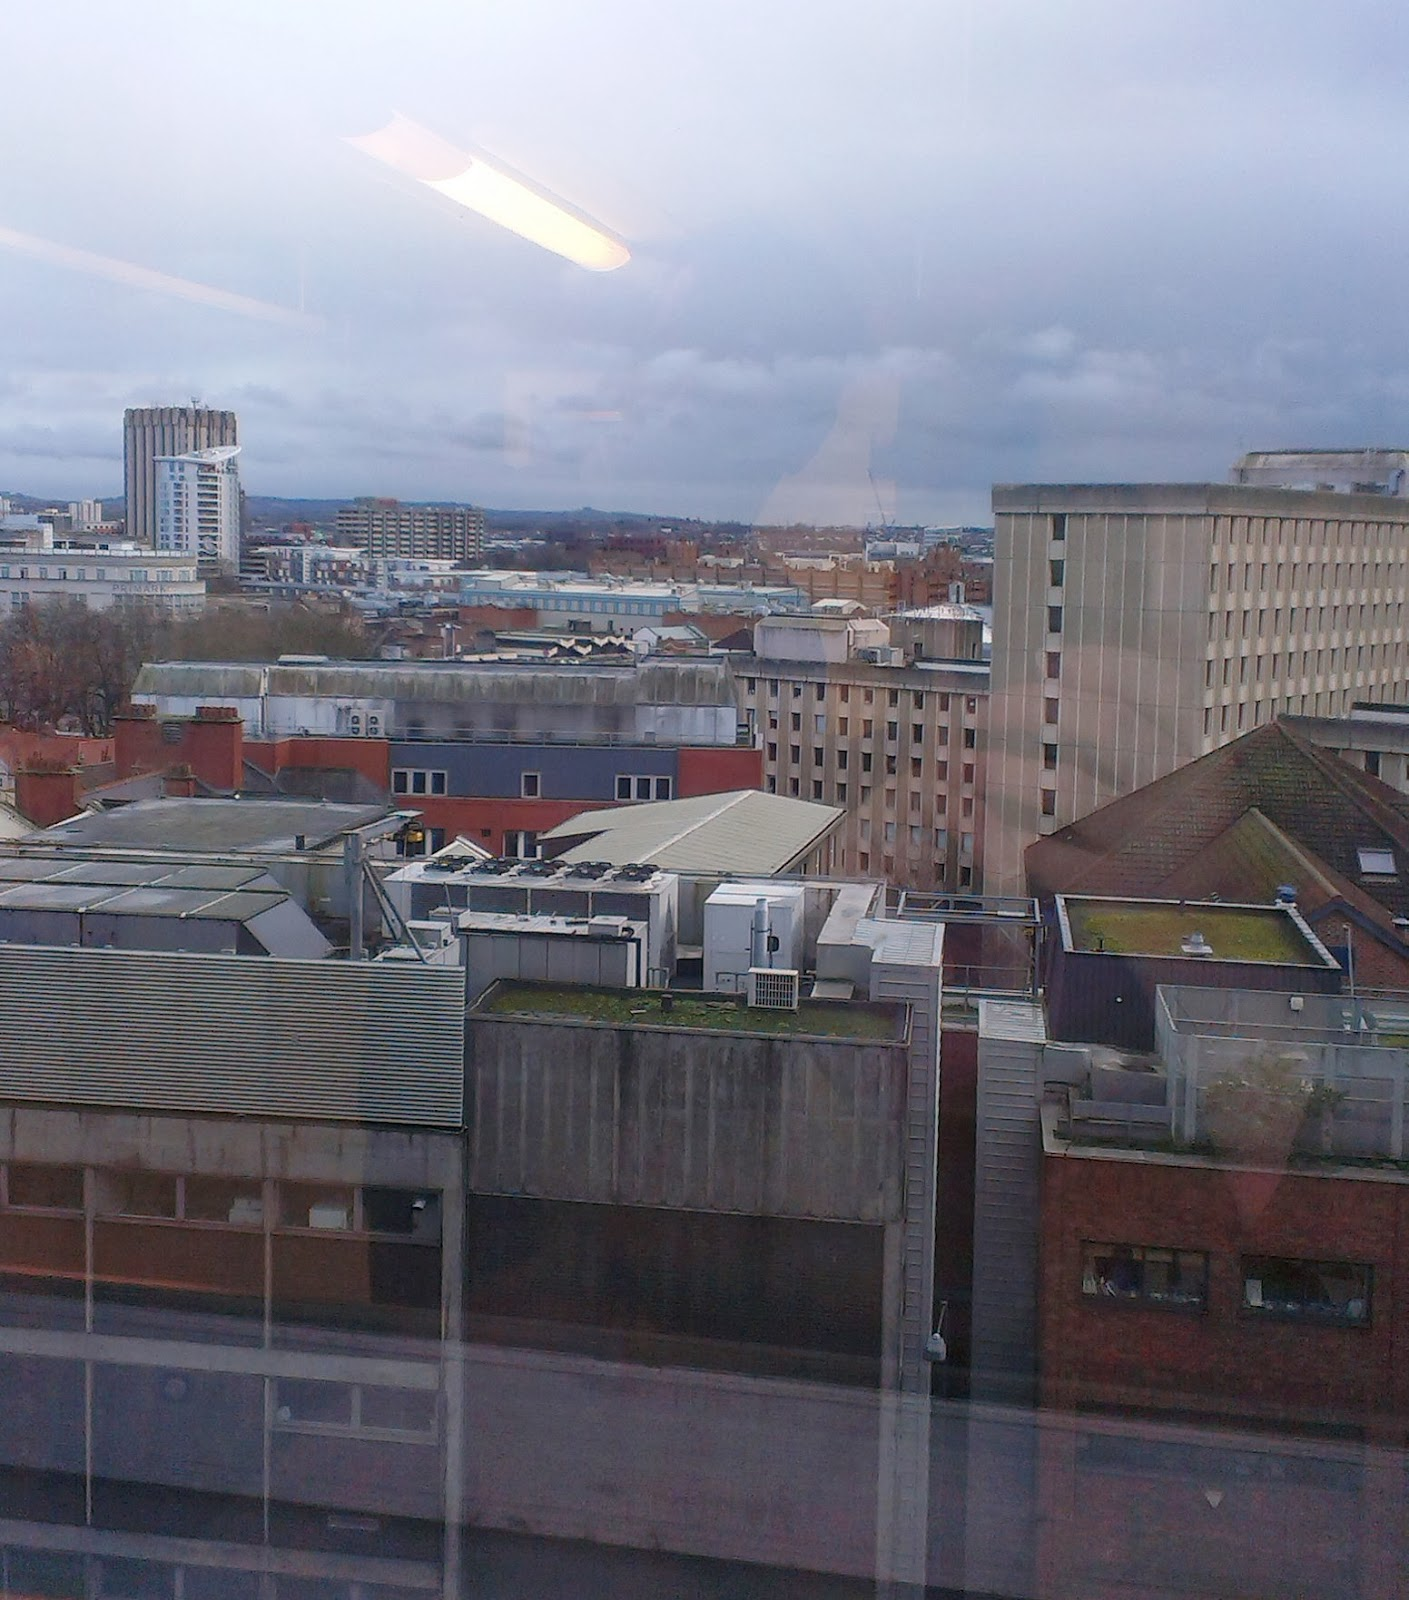 View of Bristol from Level 6 of the Bristol Royal Infirmary